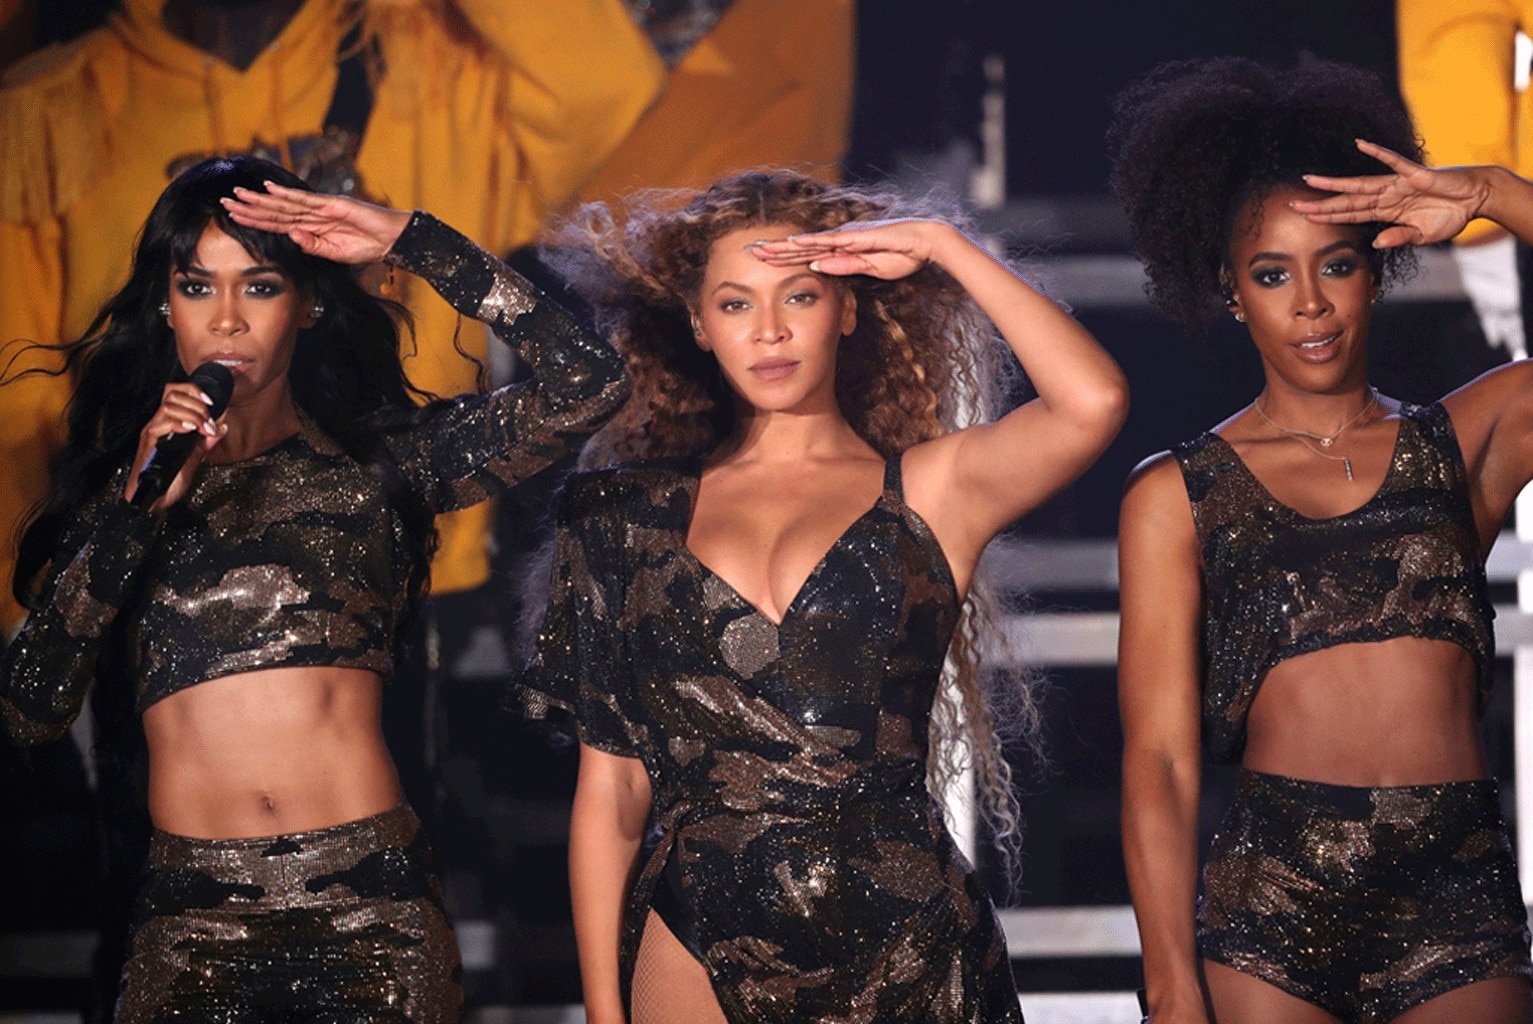 Beyonce, Destiny's Child, Kelly Rowland, Michelle Williams, Coachella, 2018